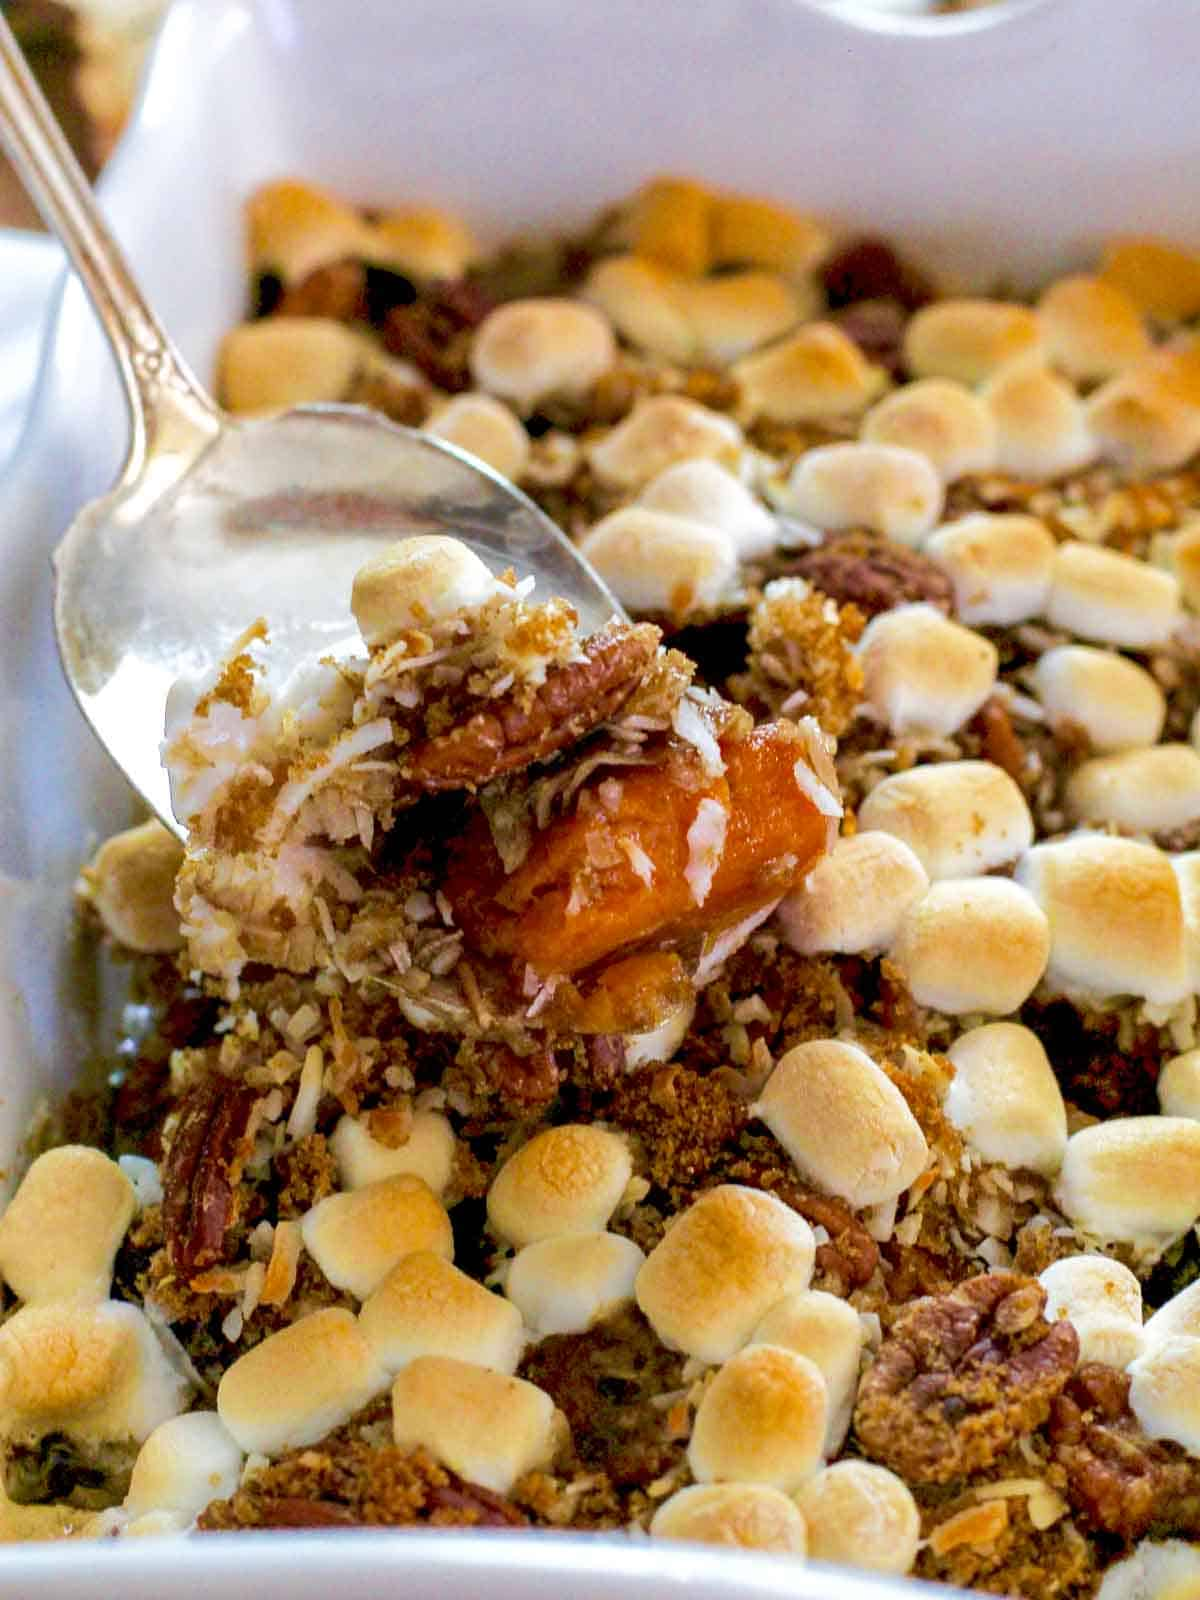 A silver server scooping up sweet potato casserole with golden toasted marshmallows on top out of a white casserole dish.